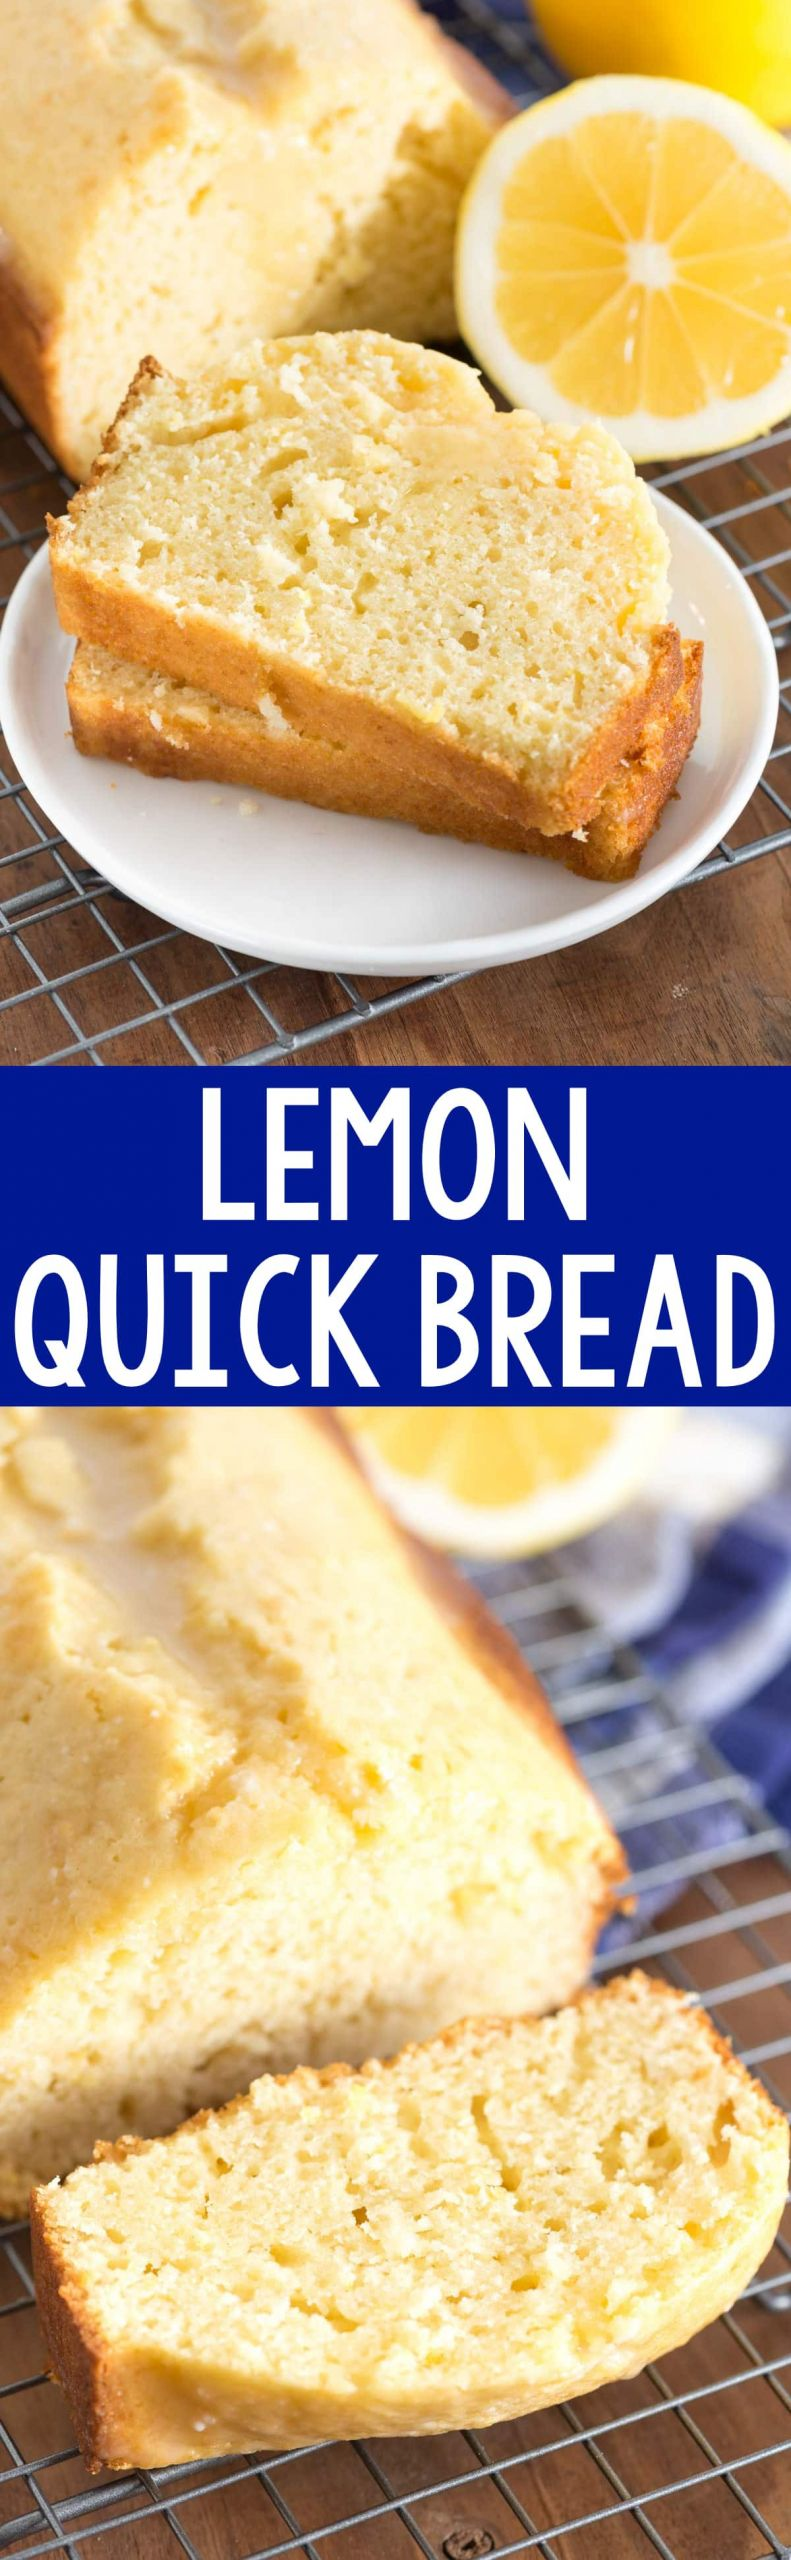 Quick Breakfast Recipes With Bread  Lemon Quick Bread Crazy for Crust